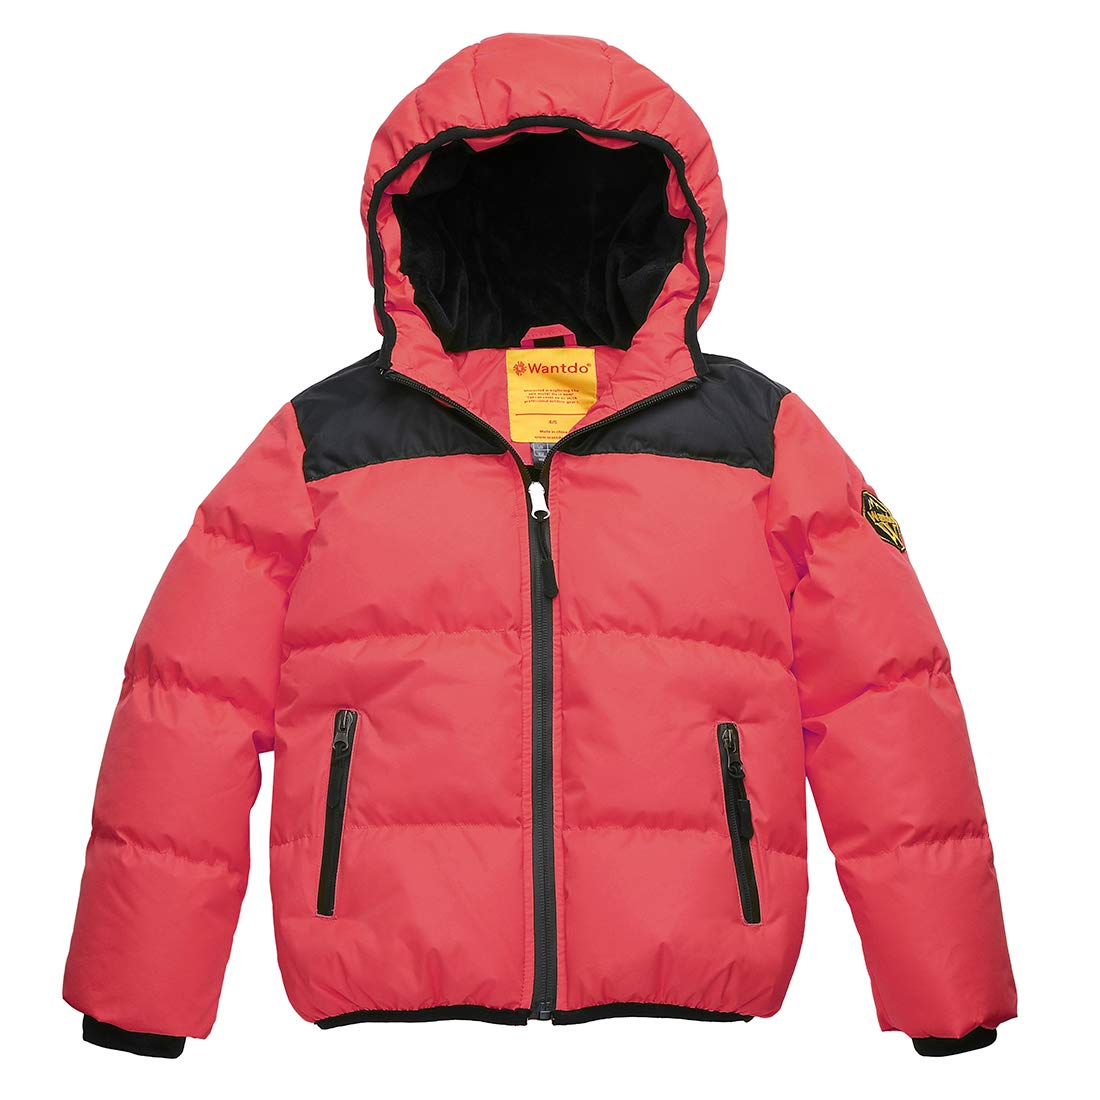 Wantdo Boy's Winter Coat Waterproof Thick Padded Winter Jacket with Hood